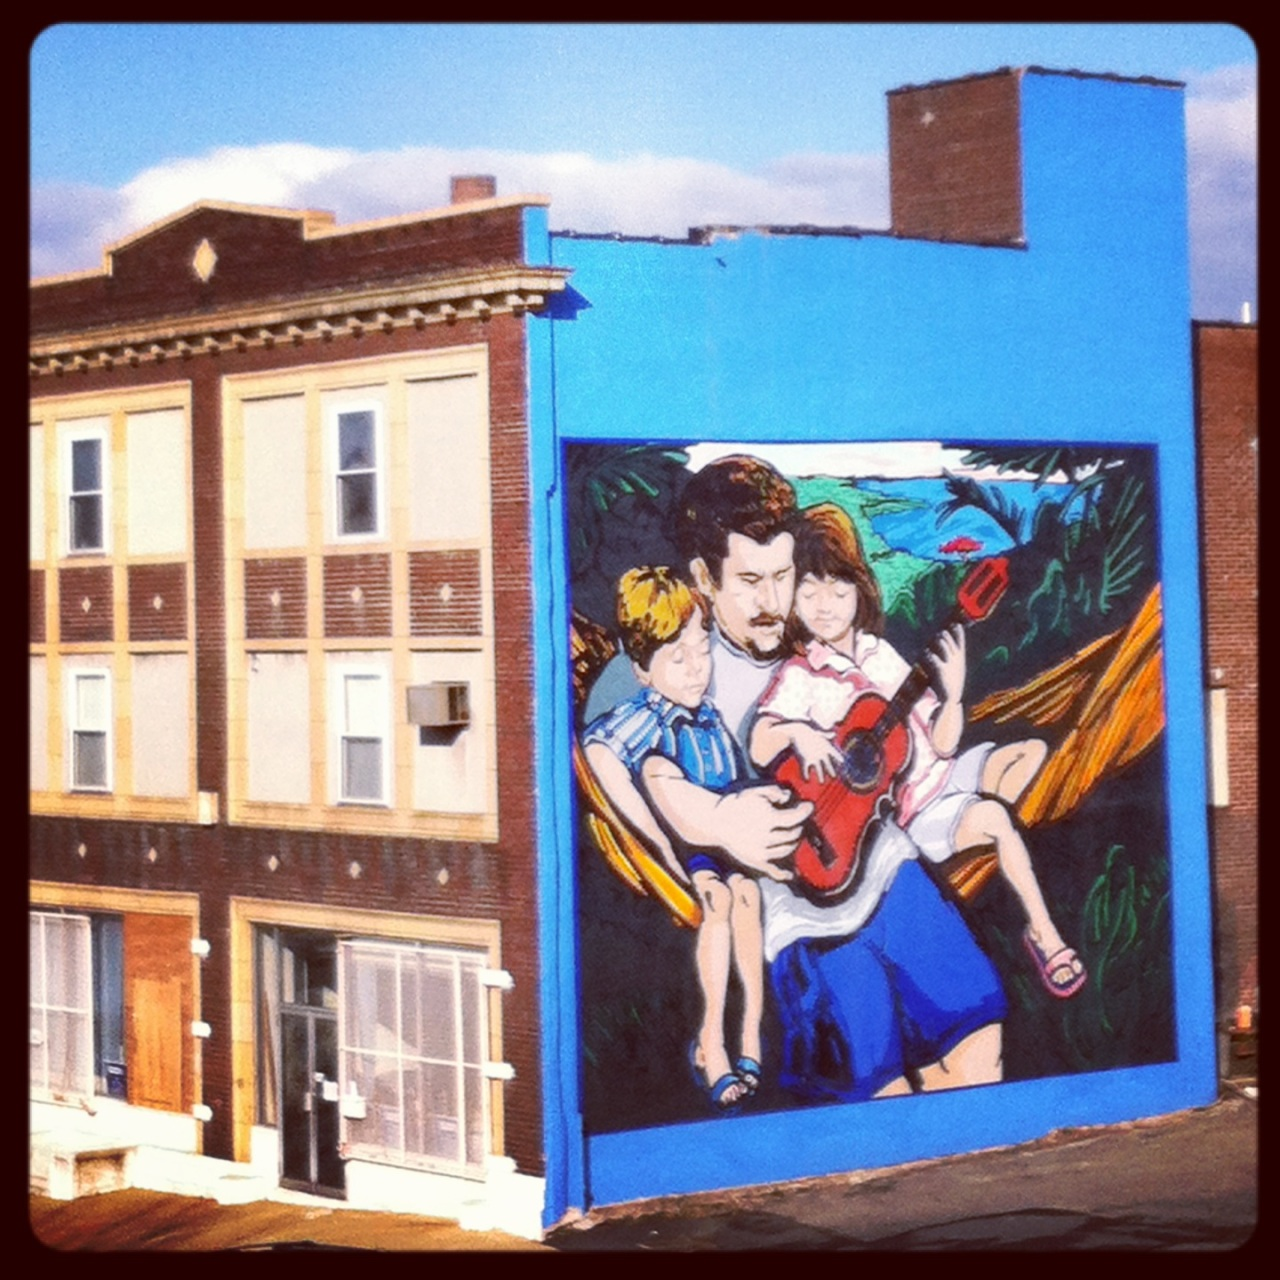 Building-sized mural